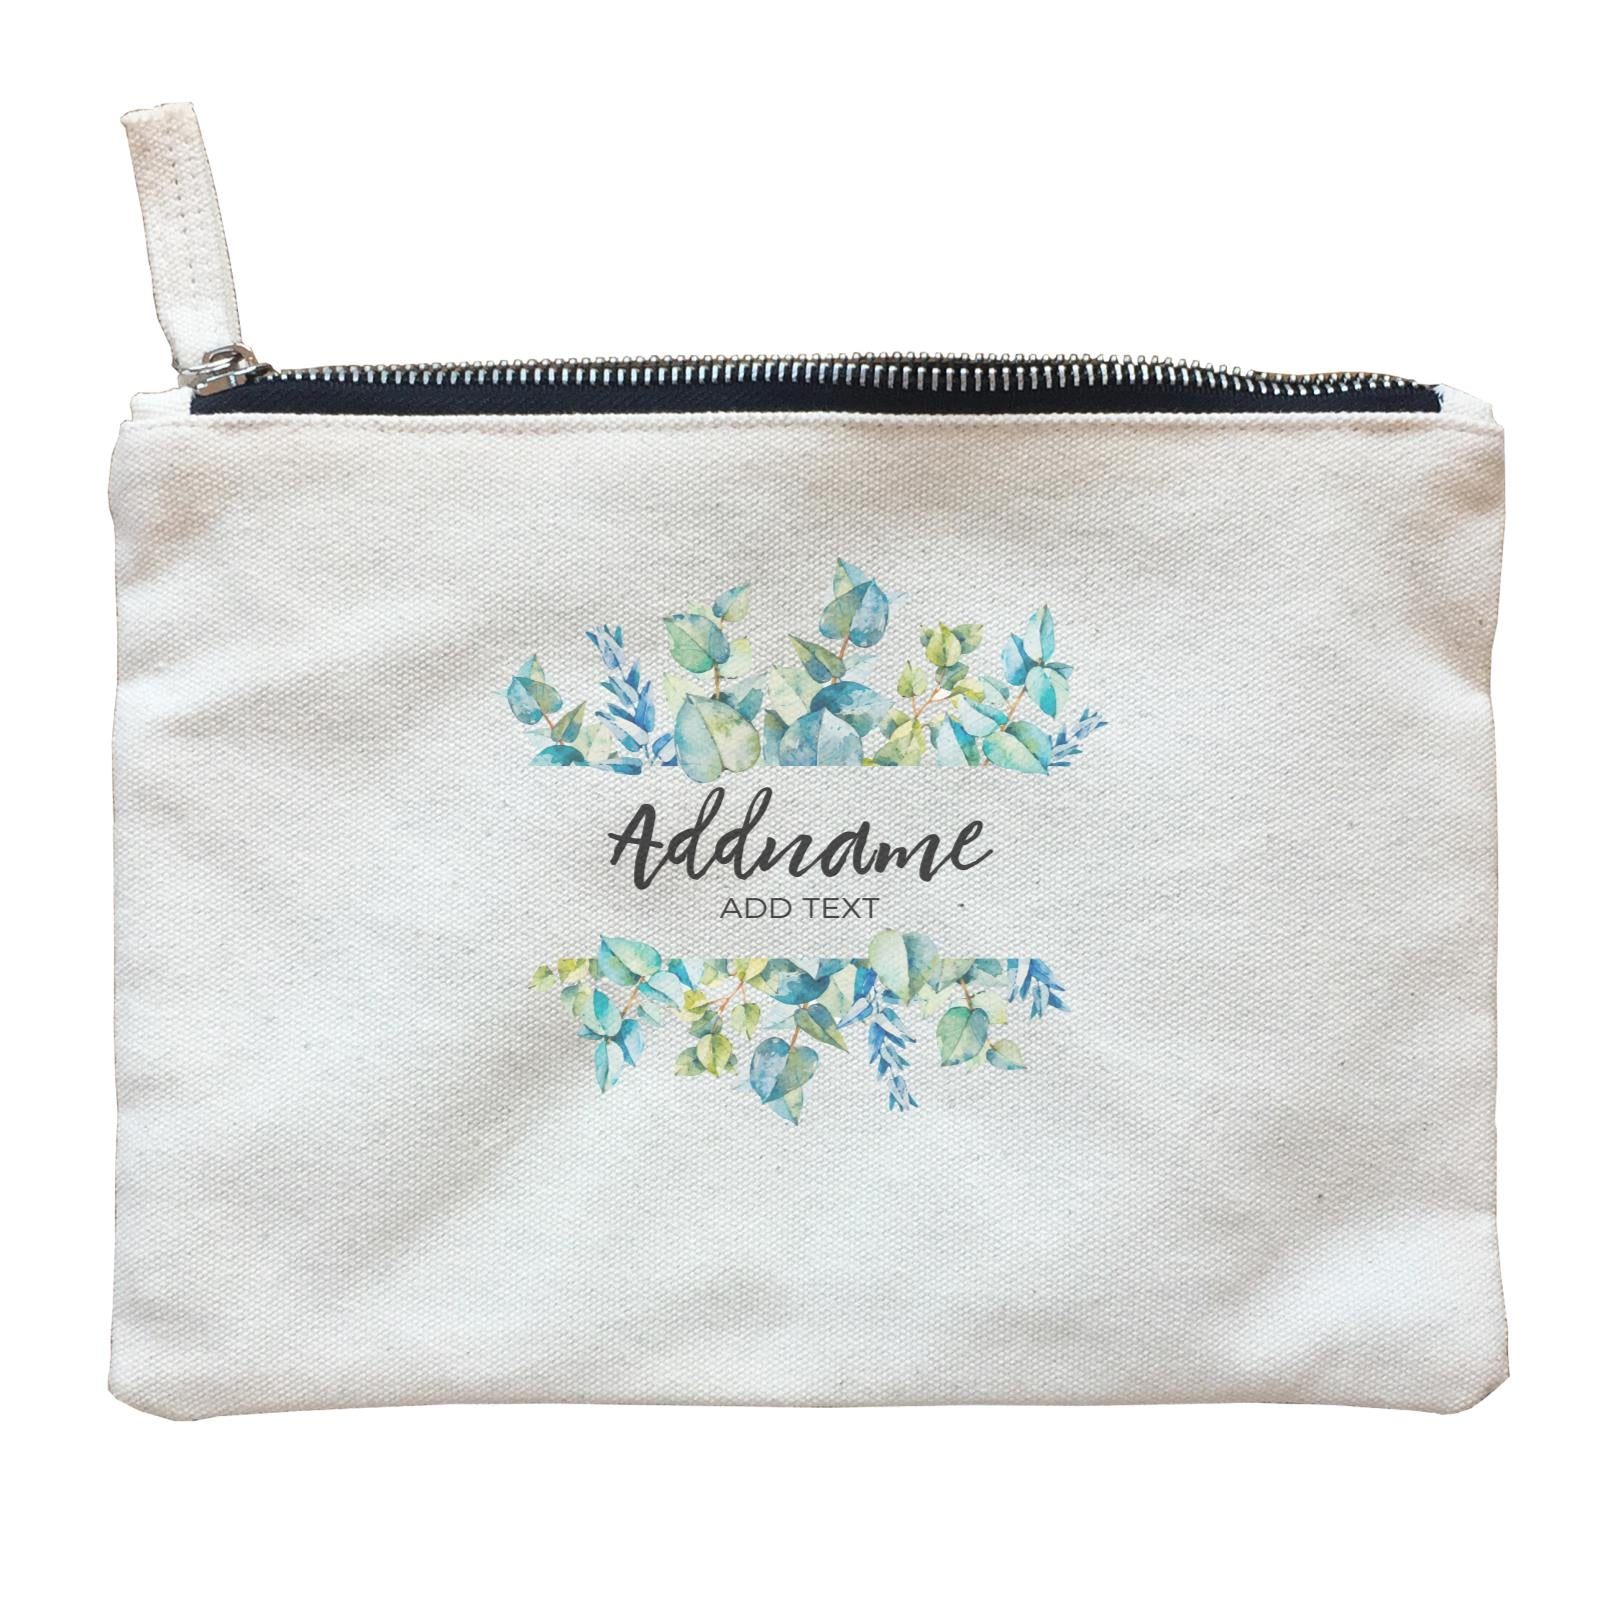 Add Your Own Text Teacher Blue Leaves Box Addname And Add Text Zipper Pouch